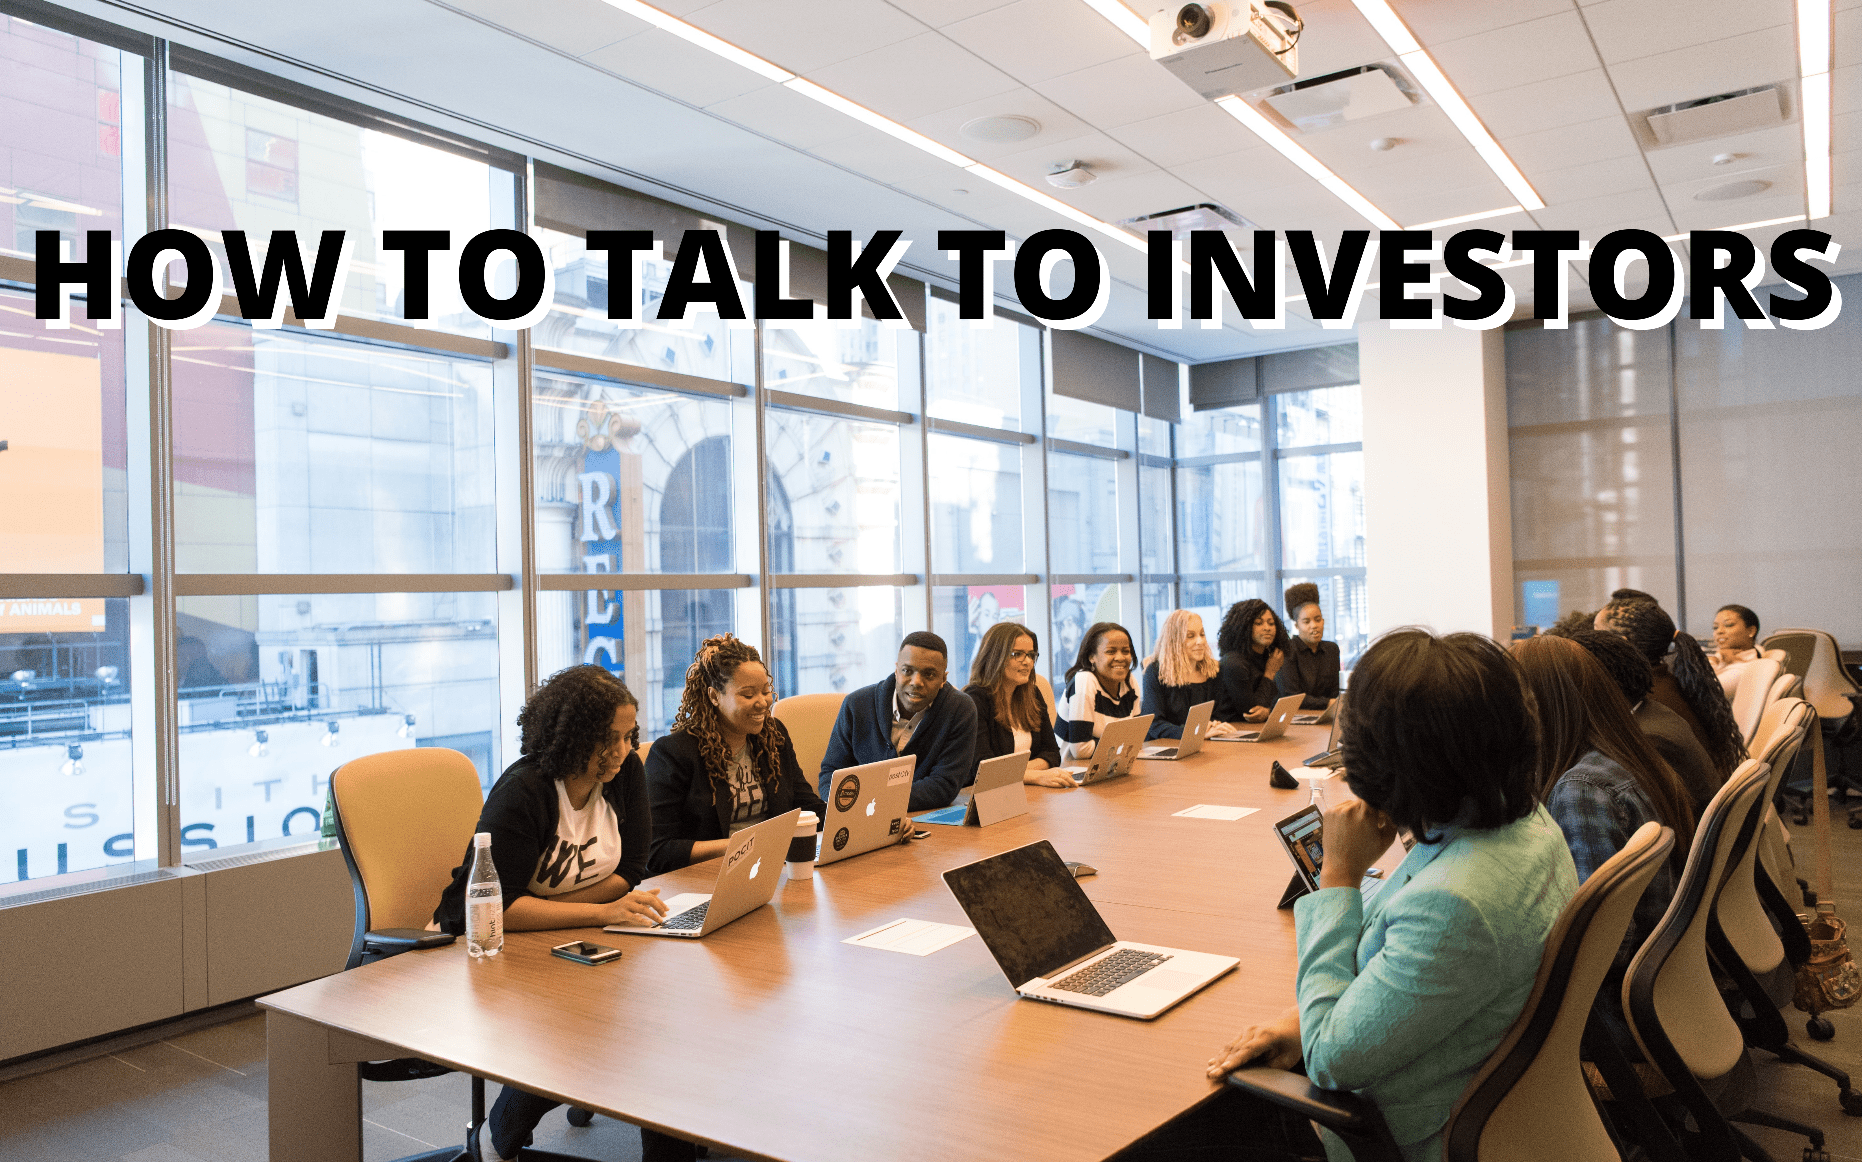 how to talk to investors, how to talk to an investor, talk to investors online, how to talk to angel investors, how to talk to potential investors